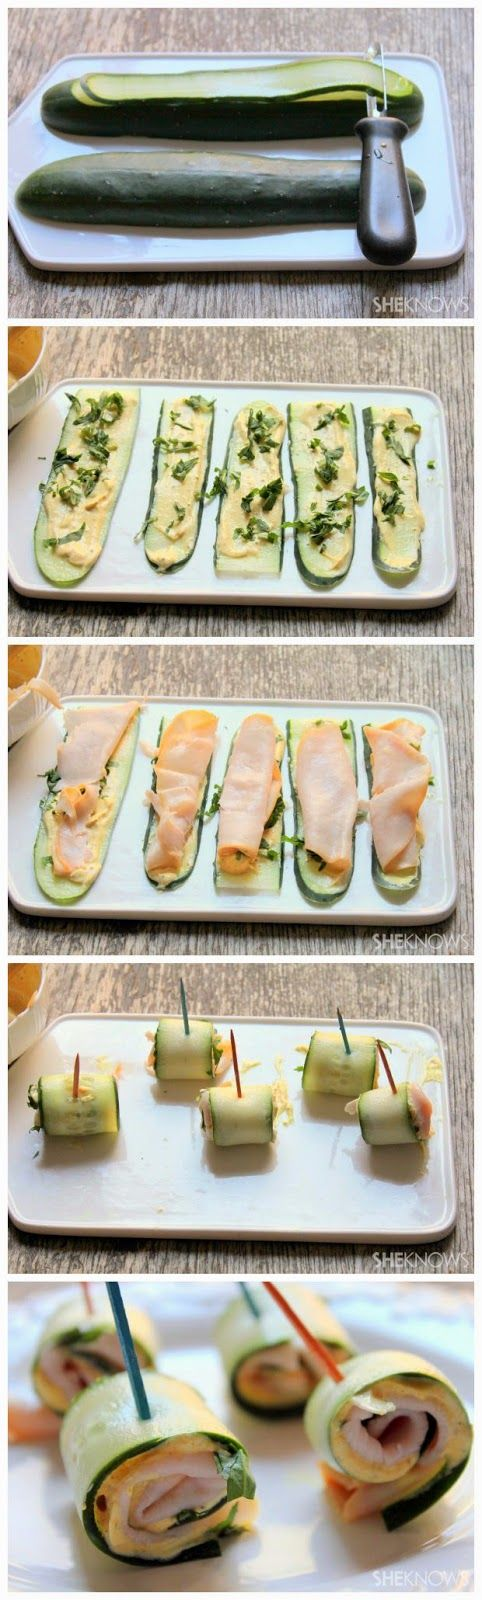 Cucumber roll-ups with hummus and turkey. YUM!